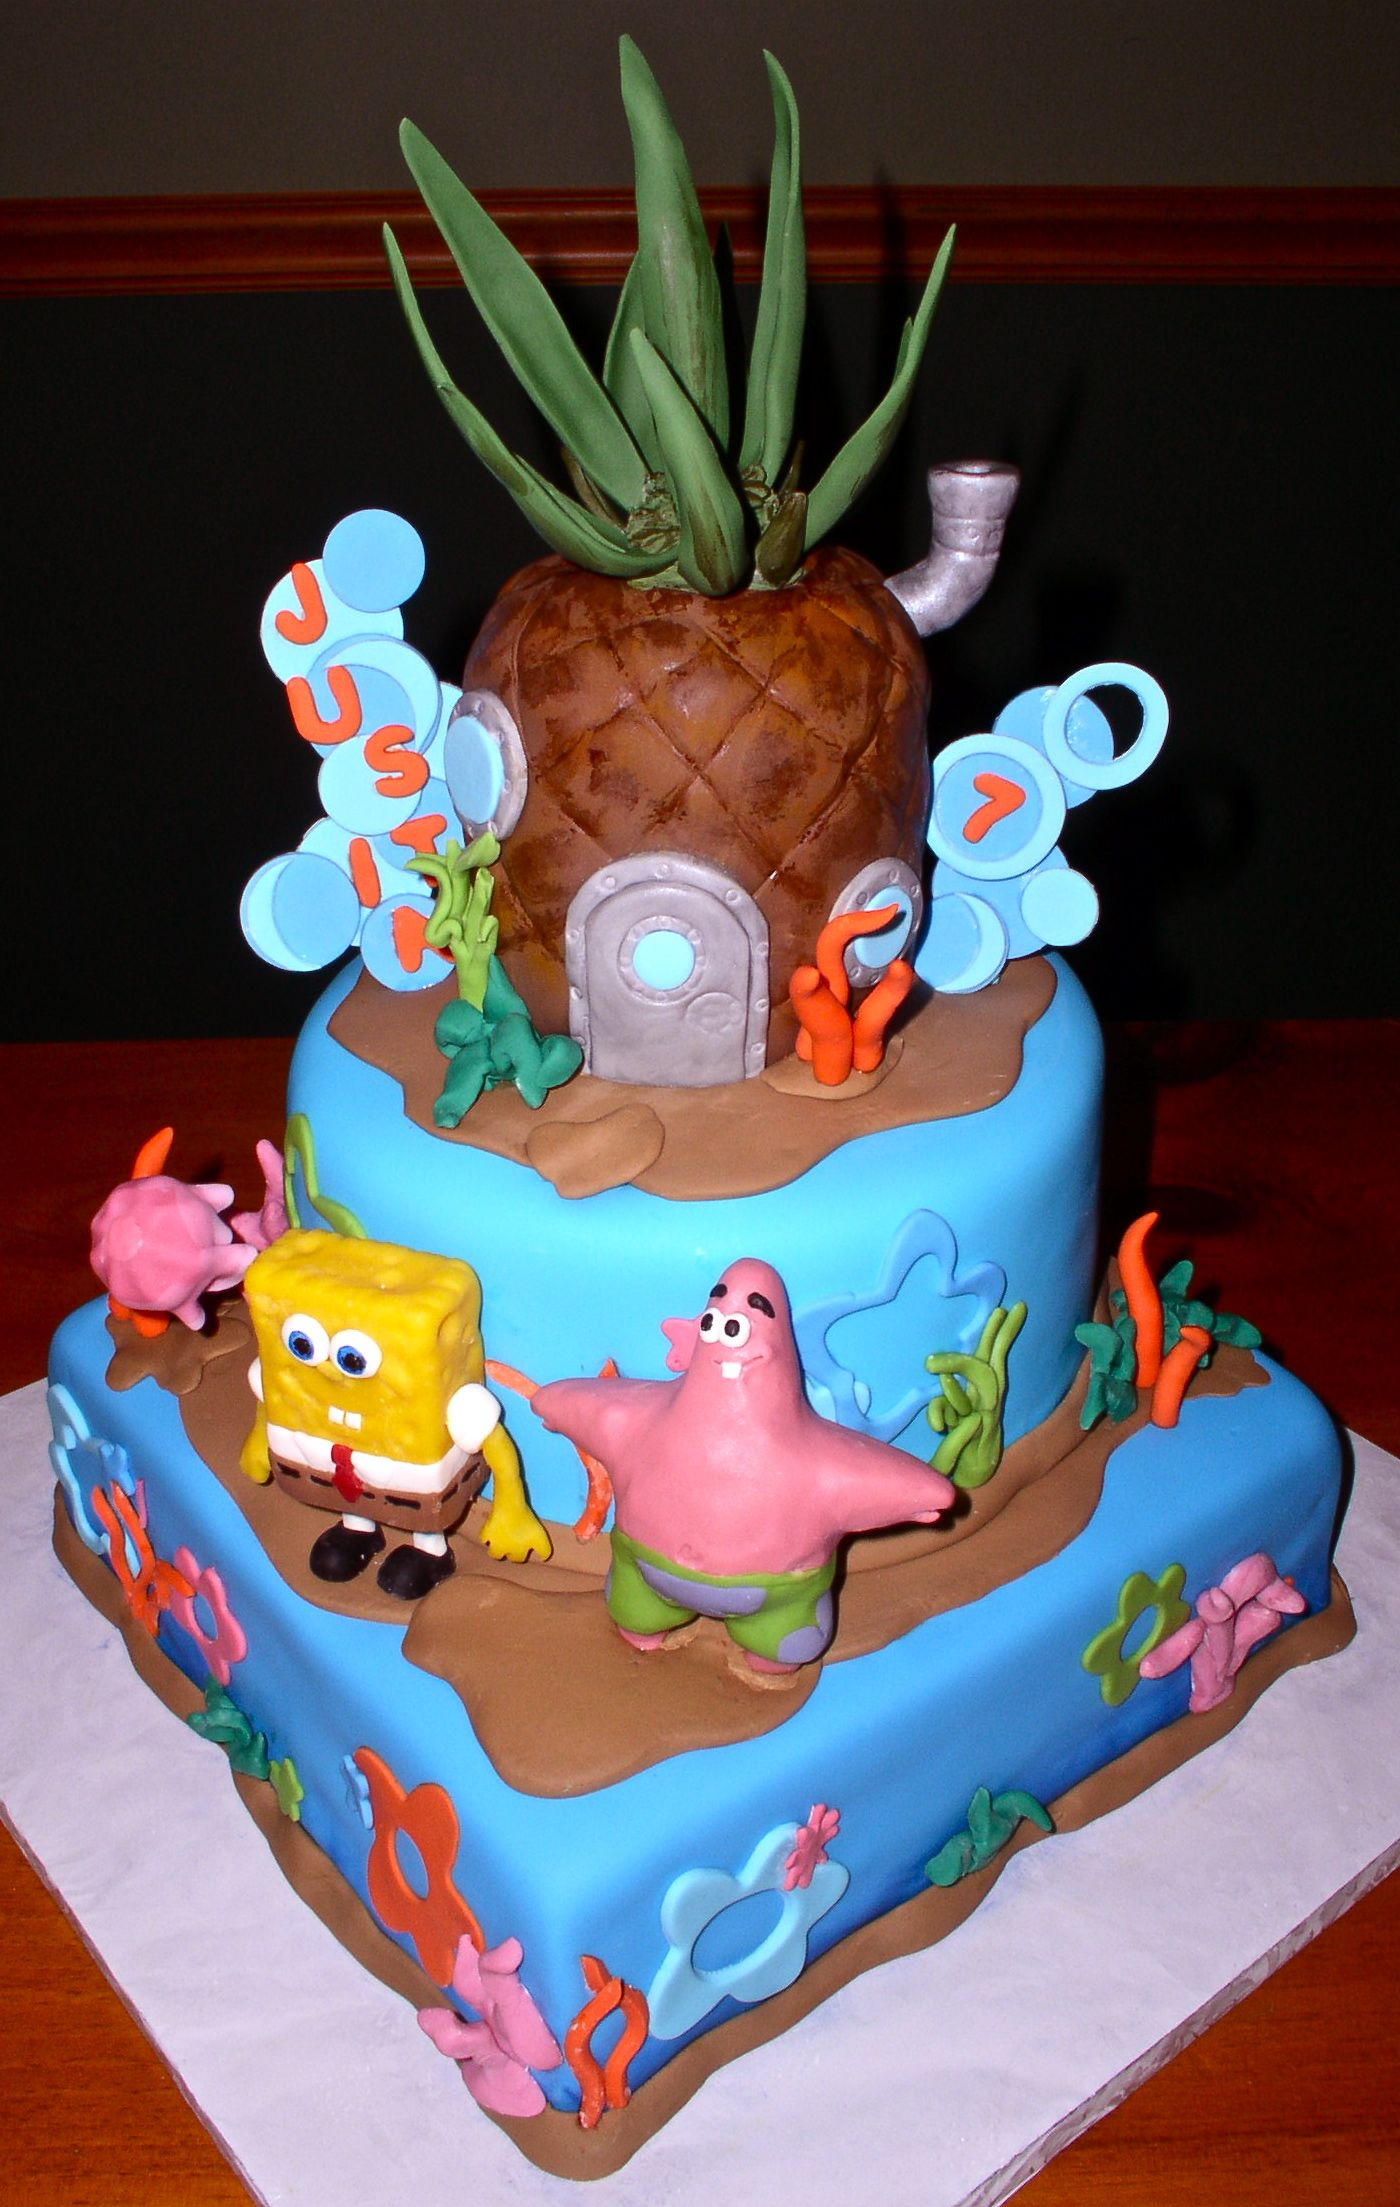 10 Amazing Cakes I Could Never Make These Bakers Have Mad Skills